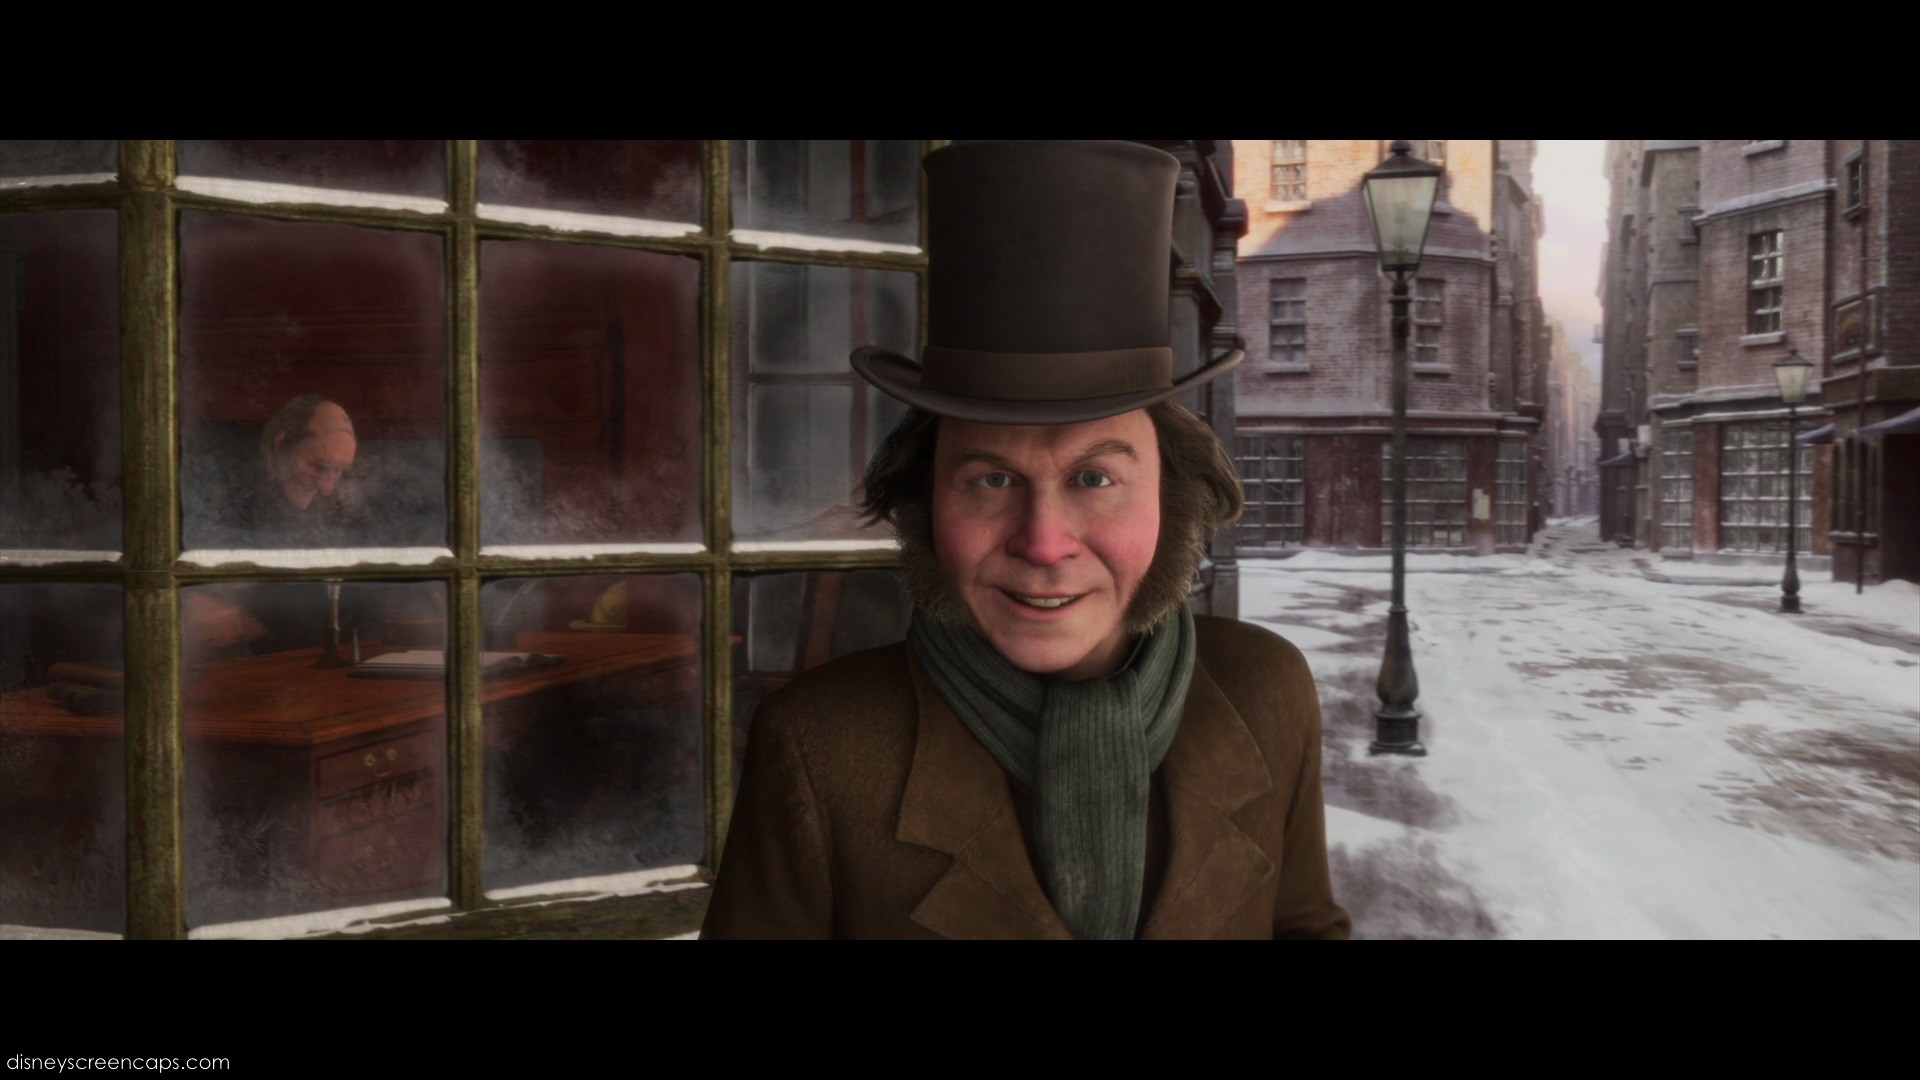 Bob Cratchit | Disney Wiki | FANDOM powered by Wikia